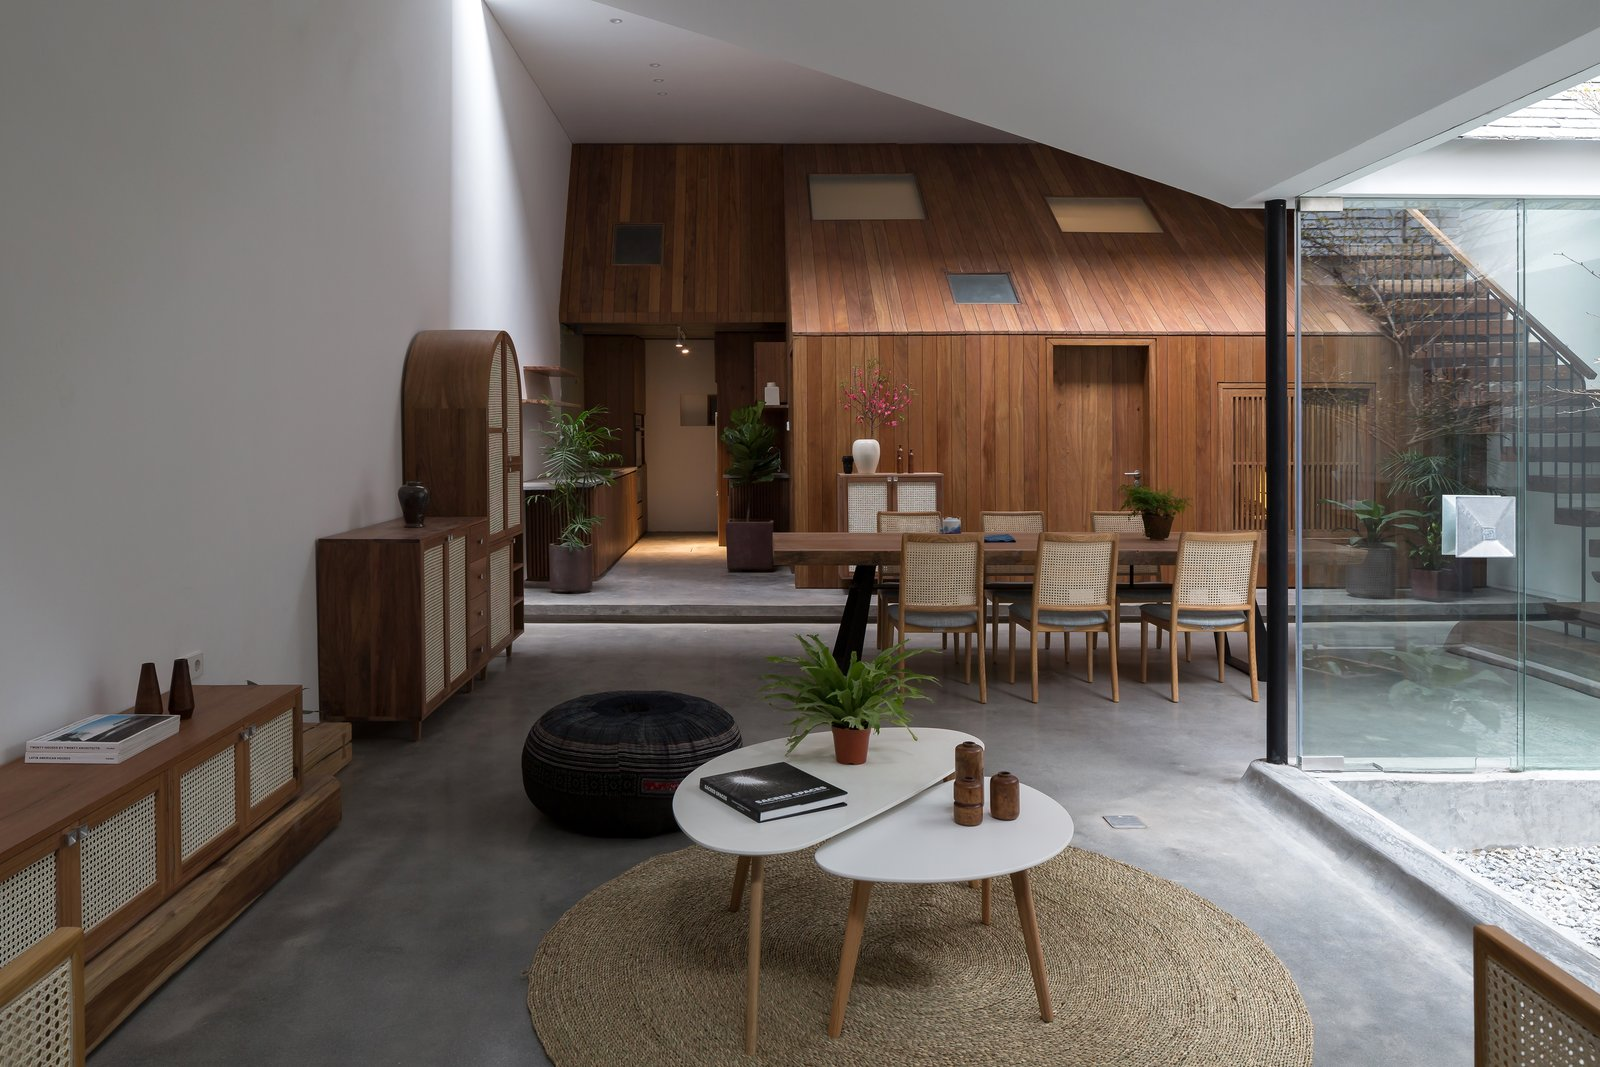 Living Room, Coffee Tables, Console Tables, Concrete Floor, Ottomans, and Rug Floor At the back of the living area is a volume shaped like a wooden house, which contains the kitchen, storage space, and a bedroom.   Photo 5 of 13 in A Vietnamese Abode Draws In Light With a Glass Atrium